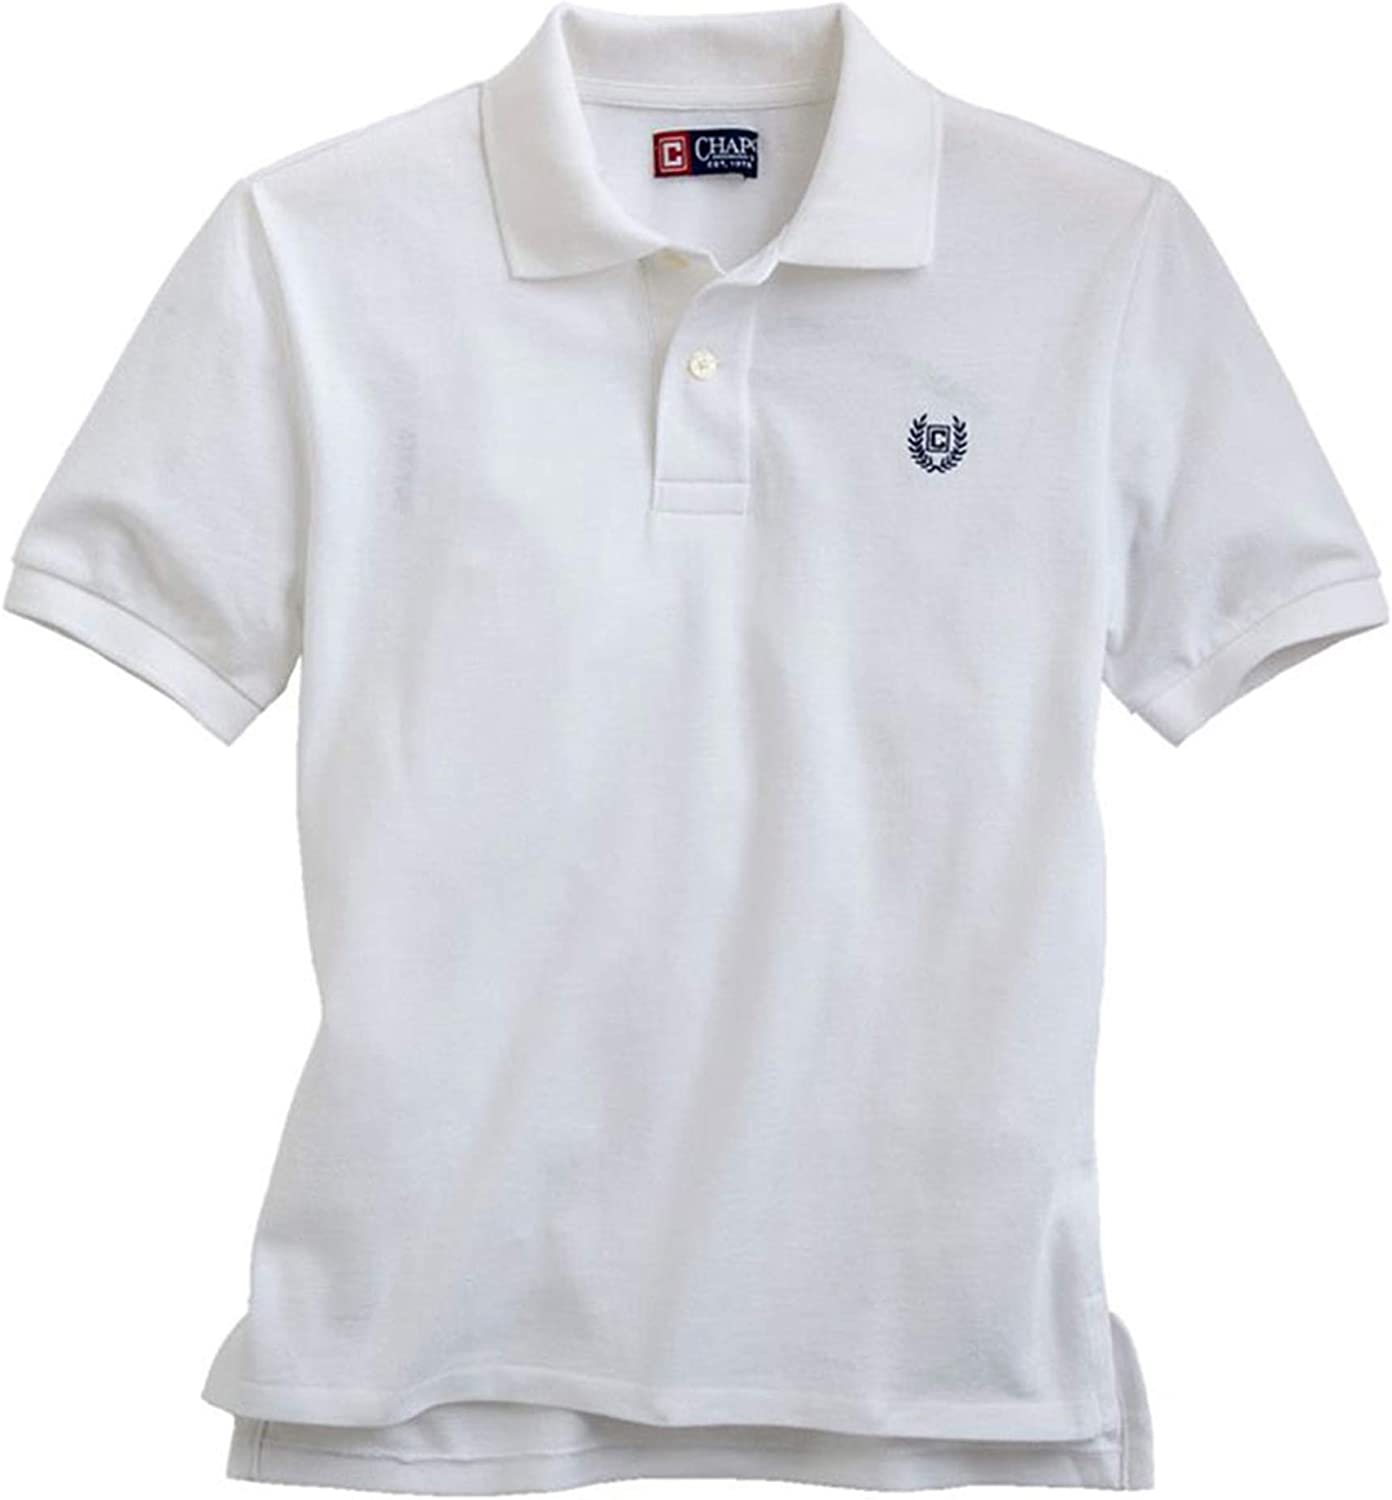 Chaps Boys Solid Logo Rugby Polo Shirt White S - Big Kids (8-20)